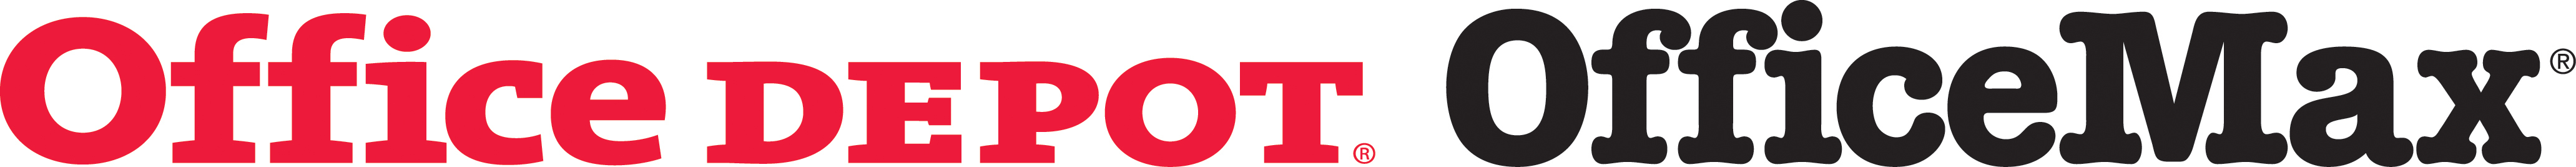 Office Depot Provides Solutions to Help Small Businesses.